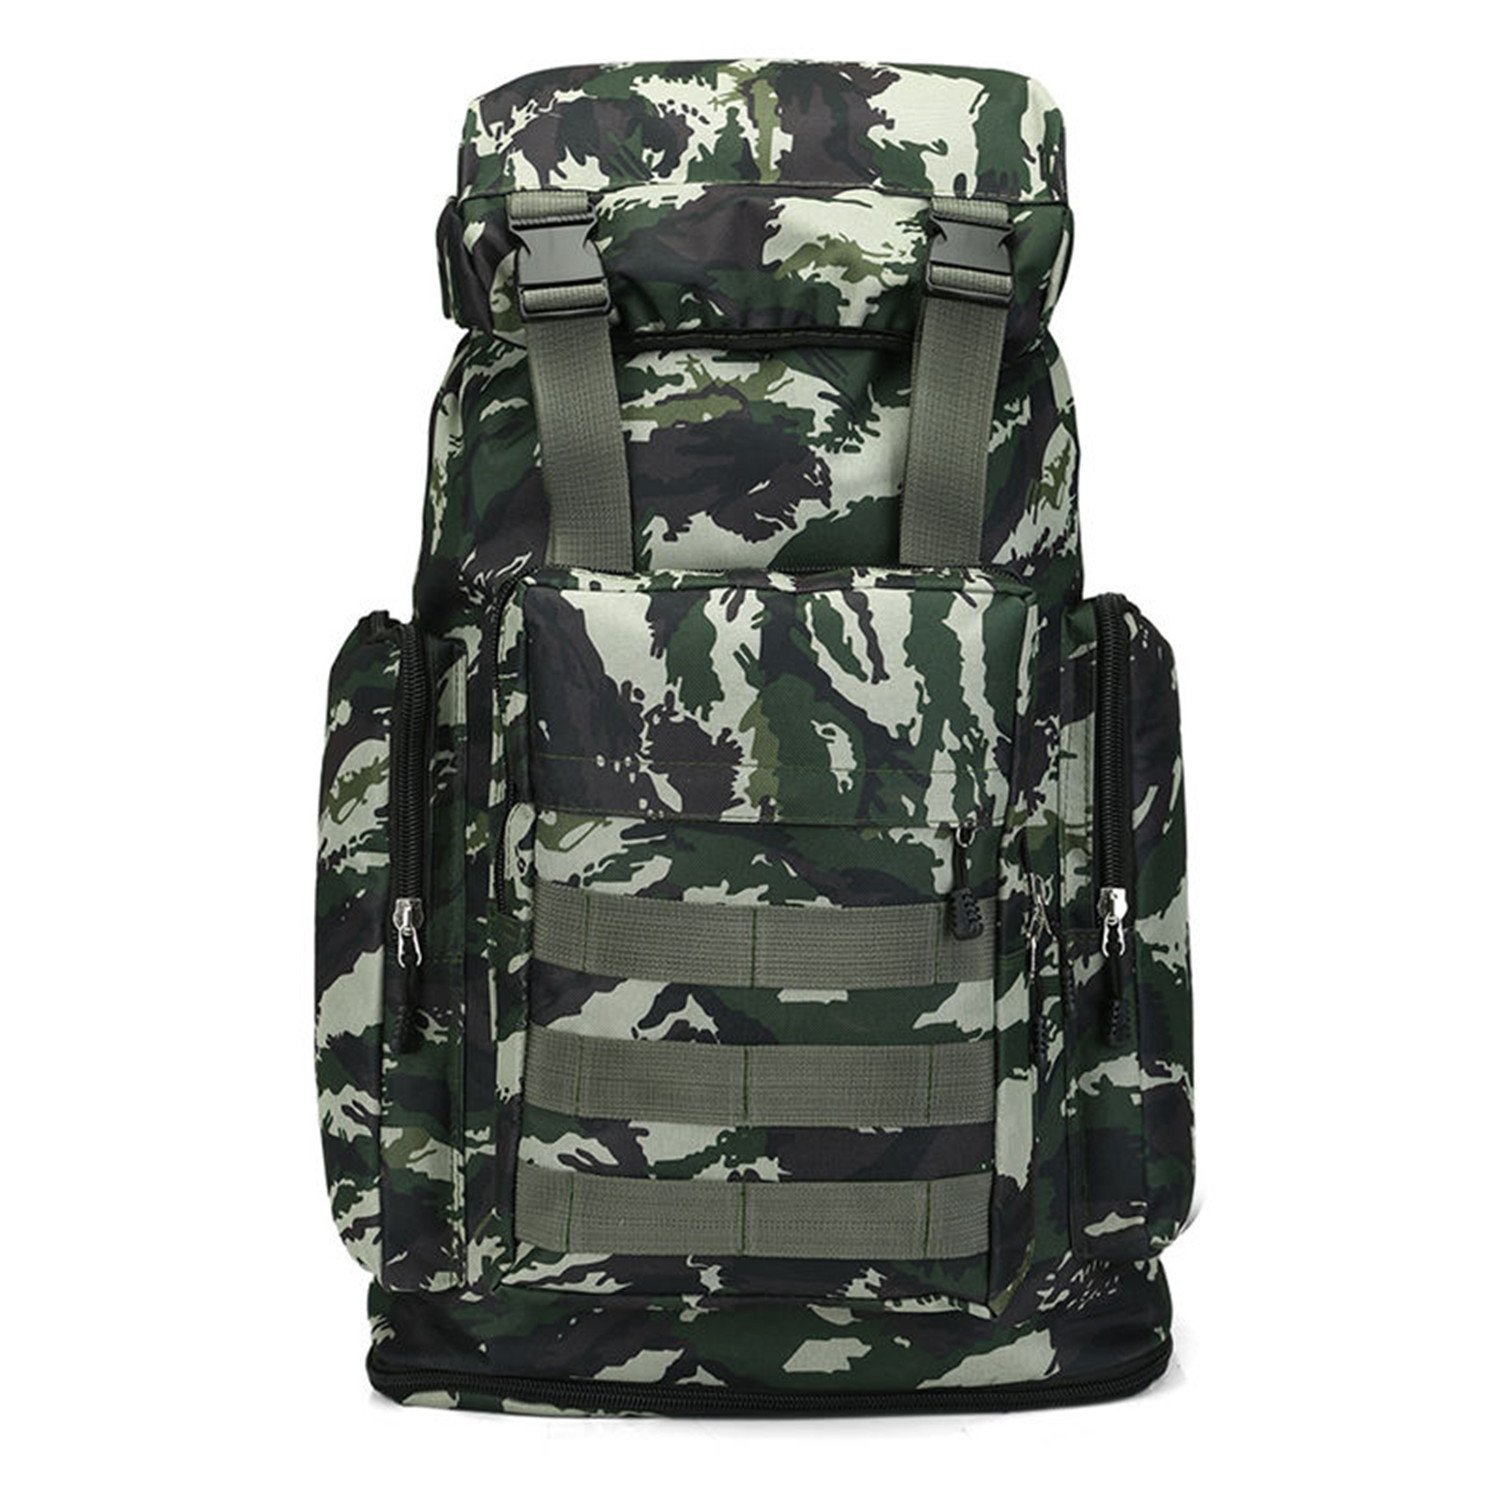 617e1d870d Pajamasea Large Camping Backpack Tactical Military Rucksack Outdoor Sports  Bag Waterproof Hiking Hunting Backpacks Camouflage